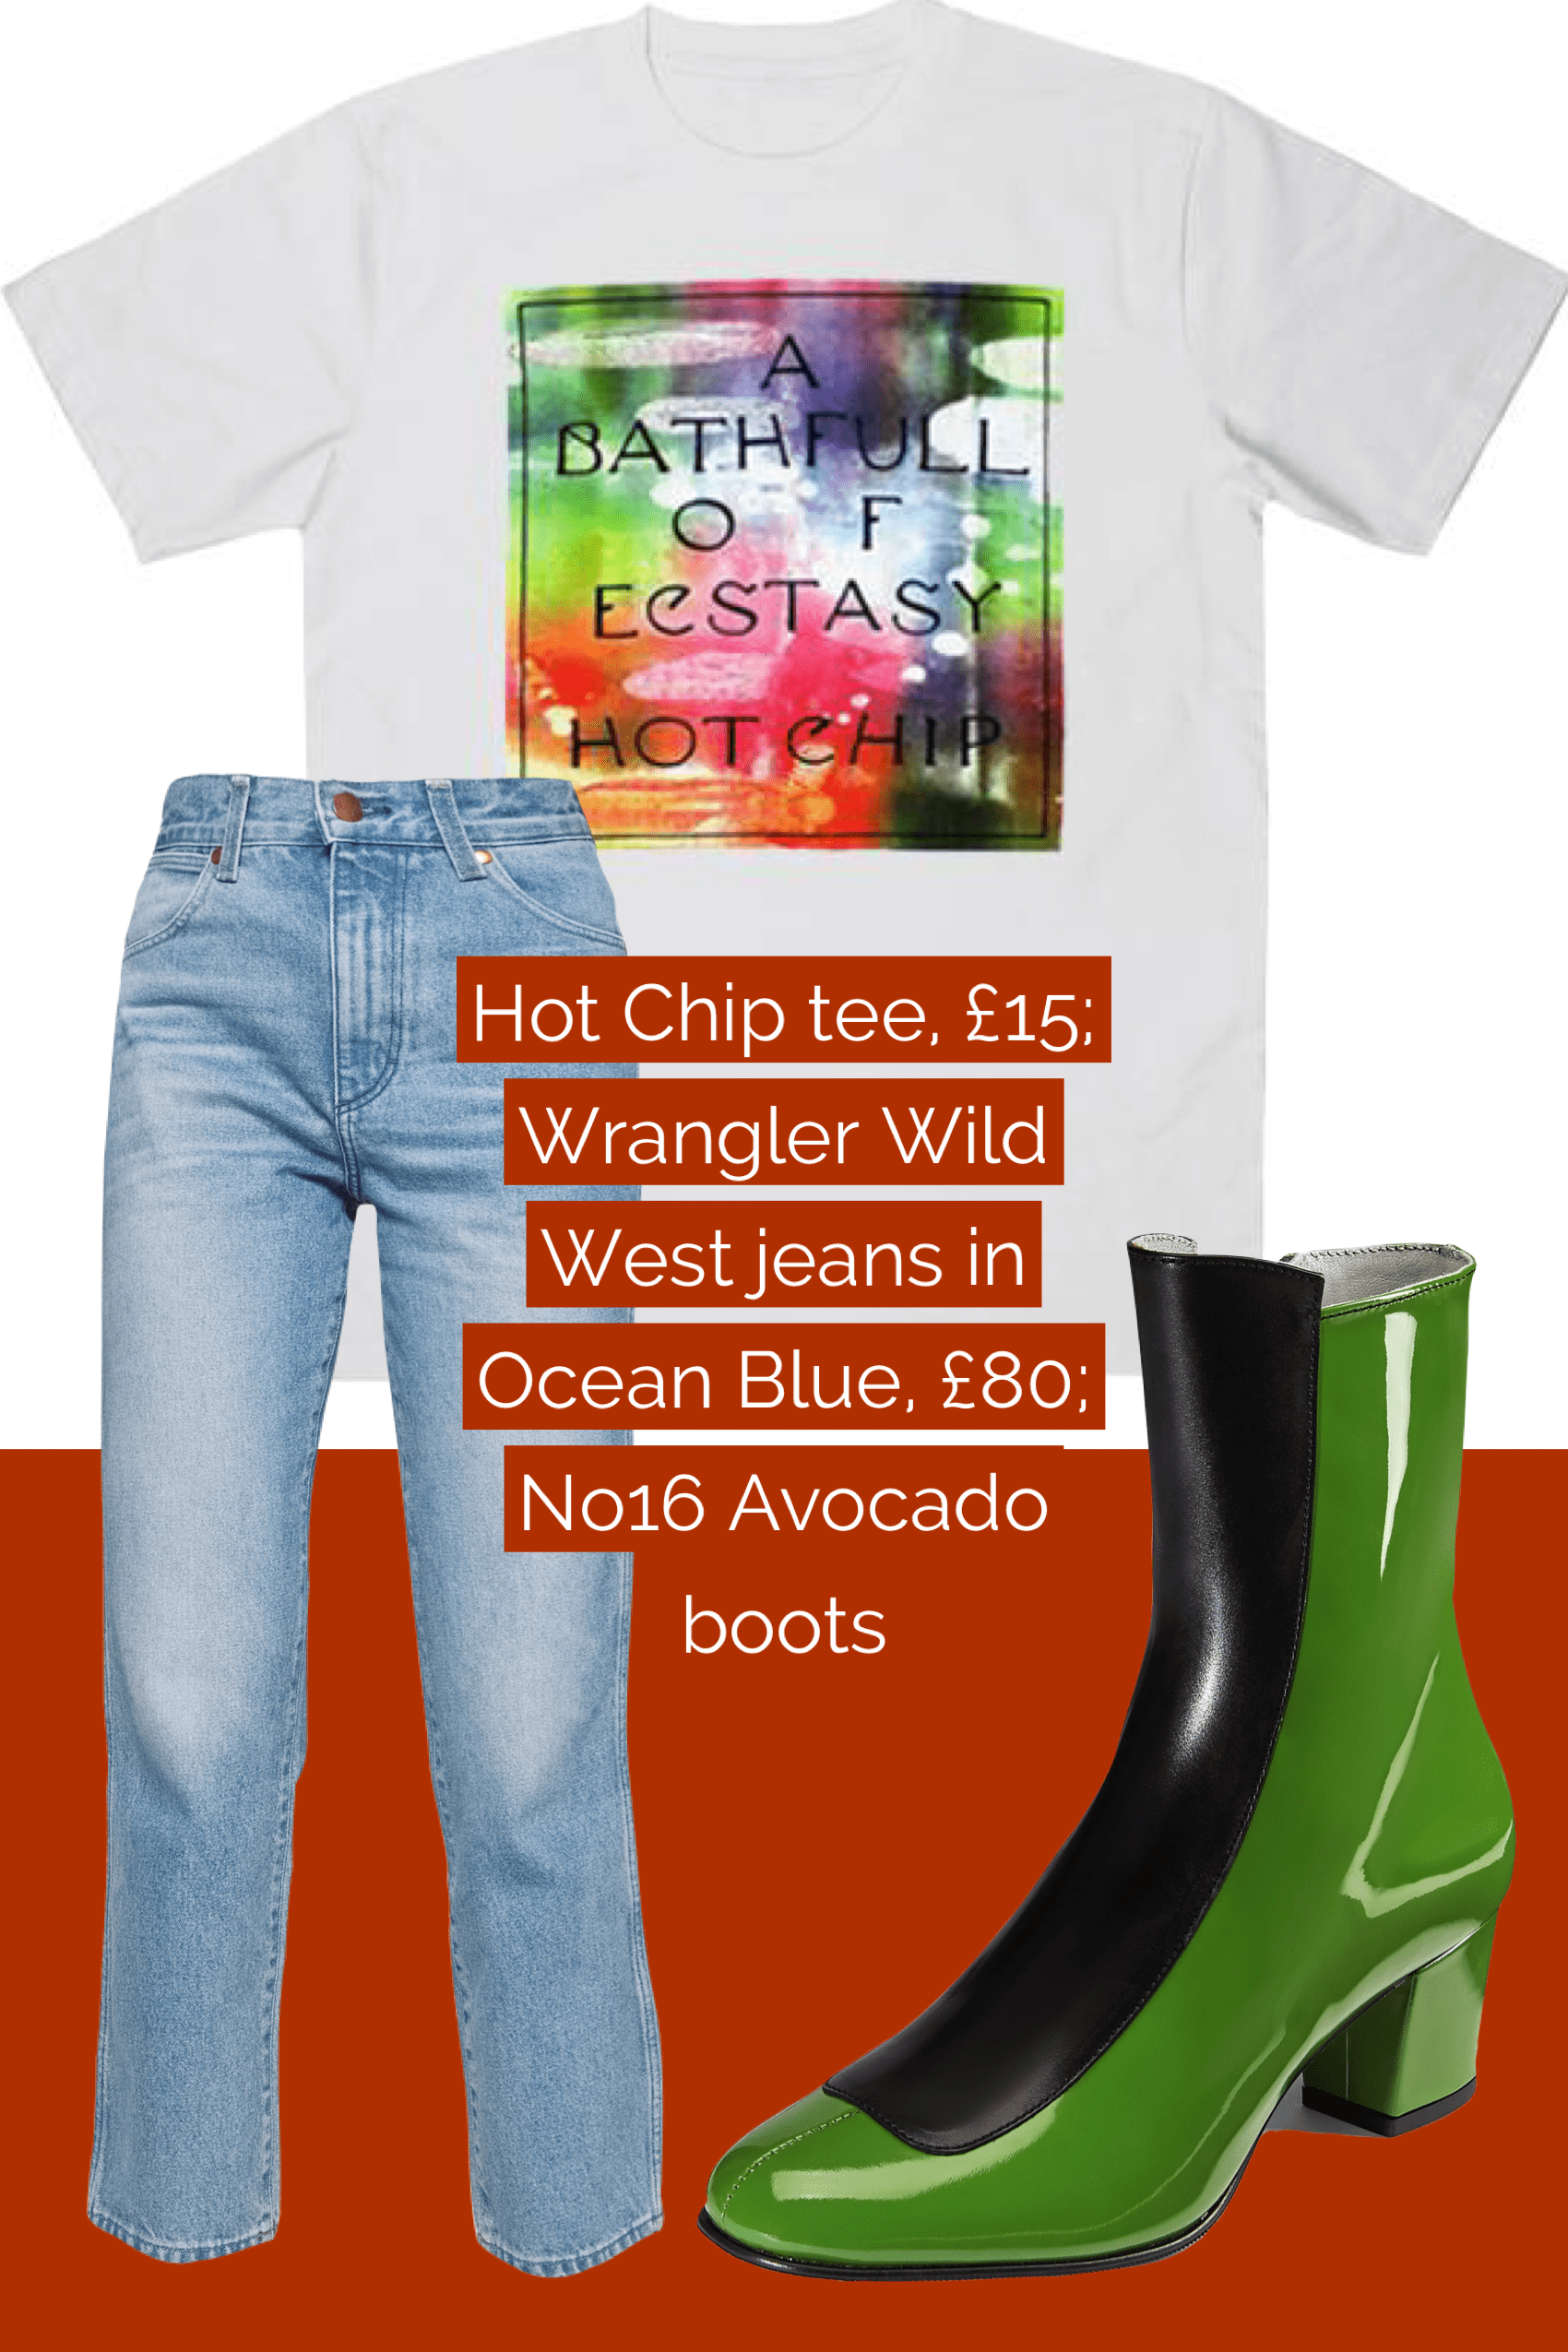 Ops&Ops No16 Avocado boots teamed with Wrangler jeans and Hot Chip t-shirt